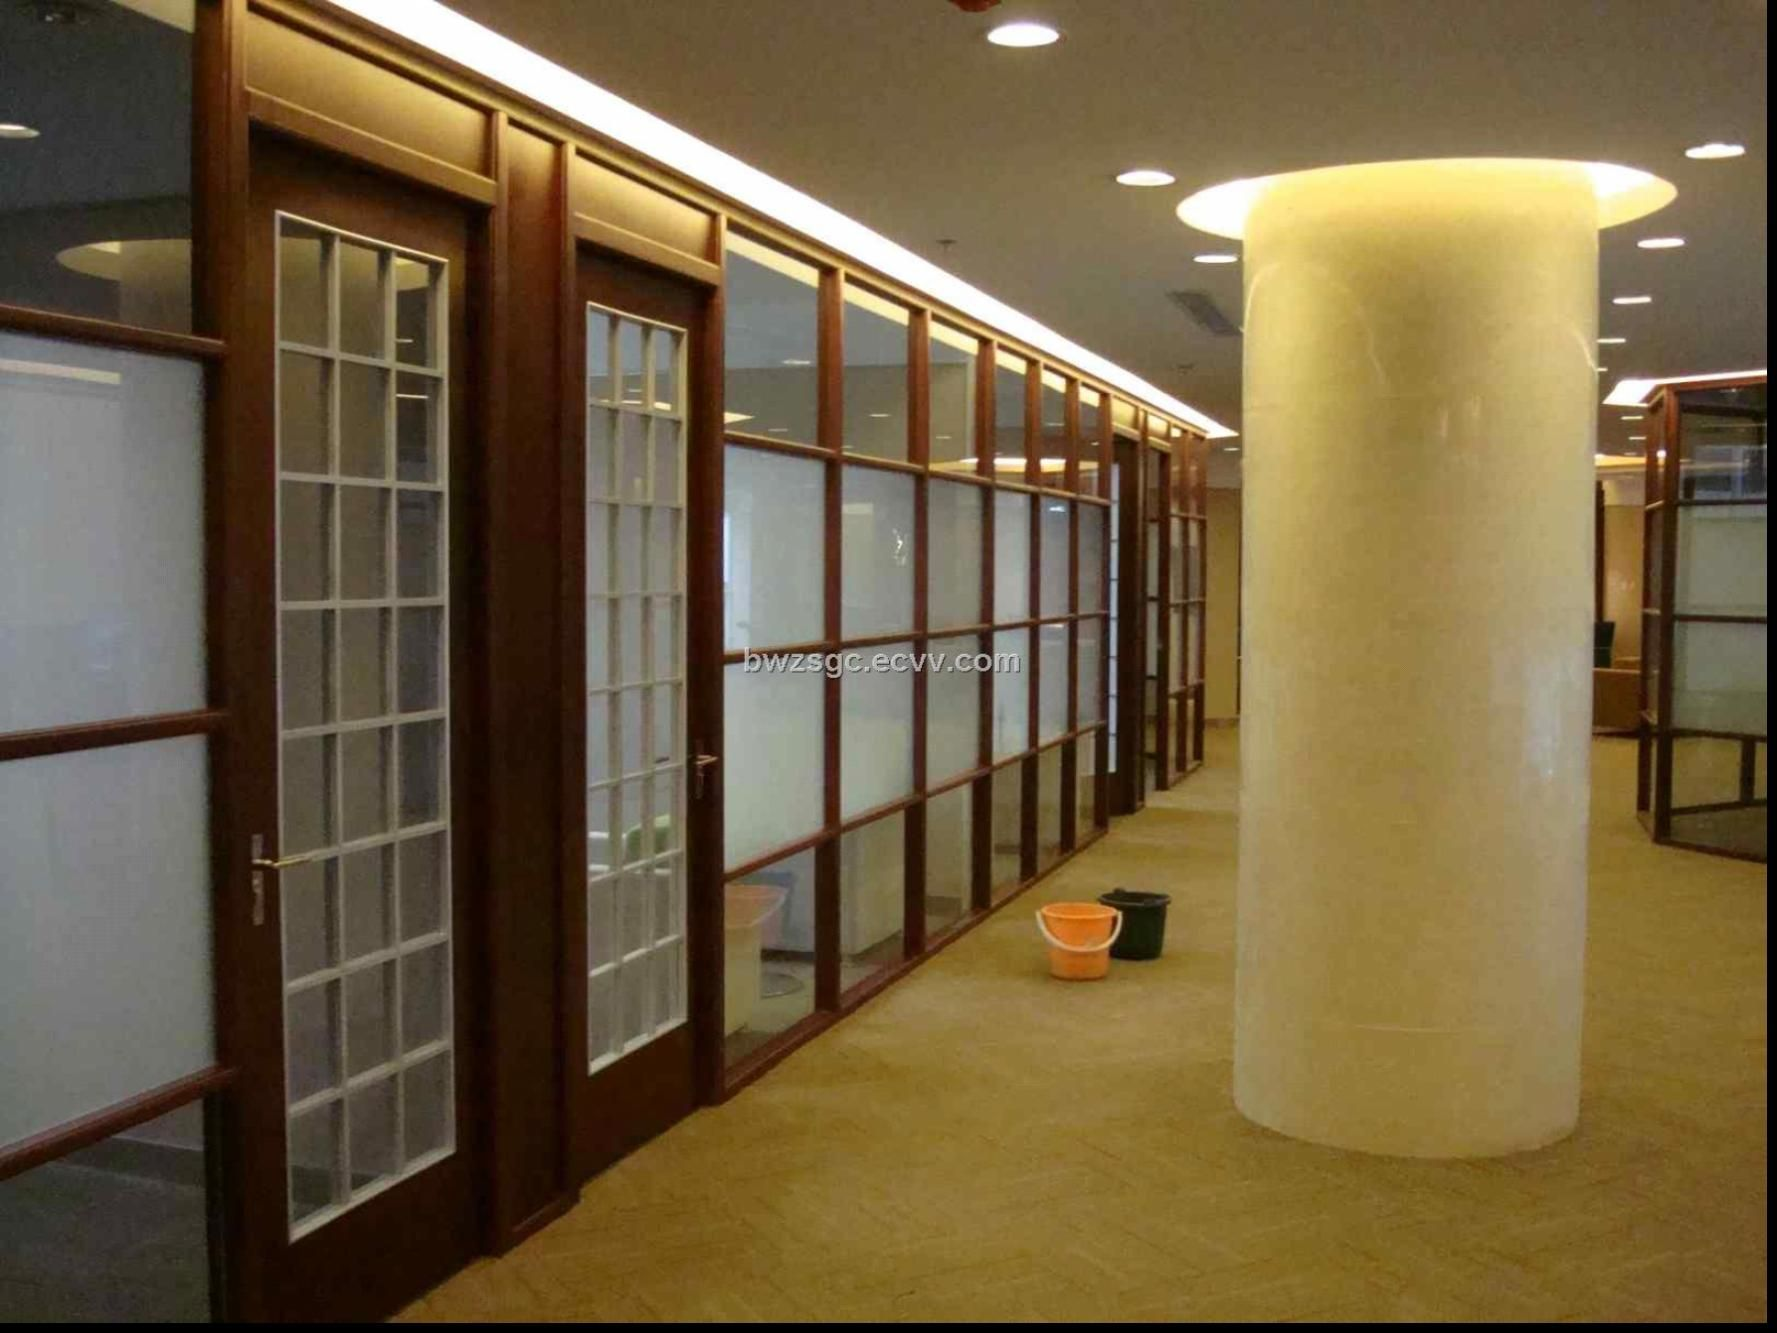 Glass Office Partitions Room Dividers Impressive Ideas Inspiration Office Partition Design Small House Diy Room Divider Ideas Studio Office Partition Design